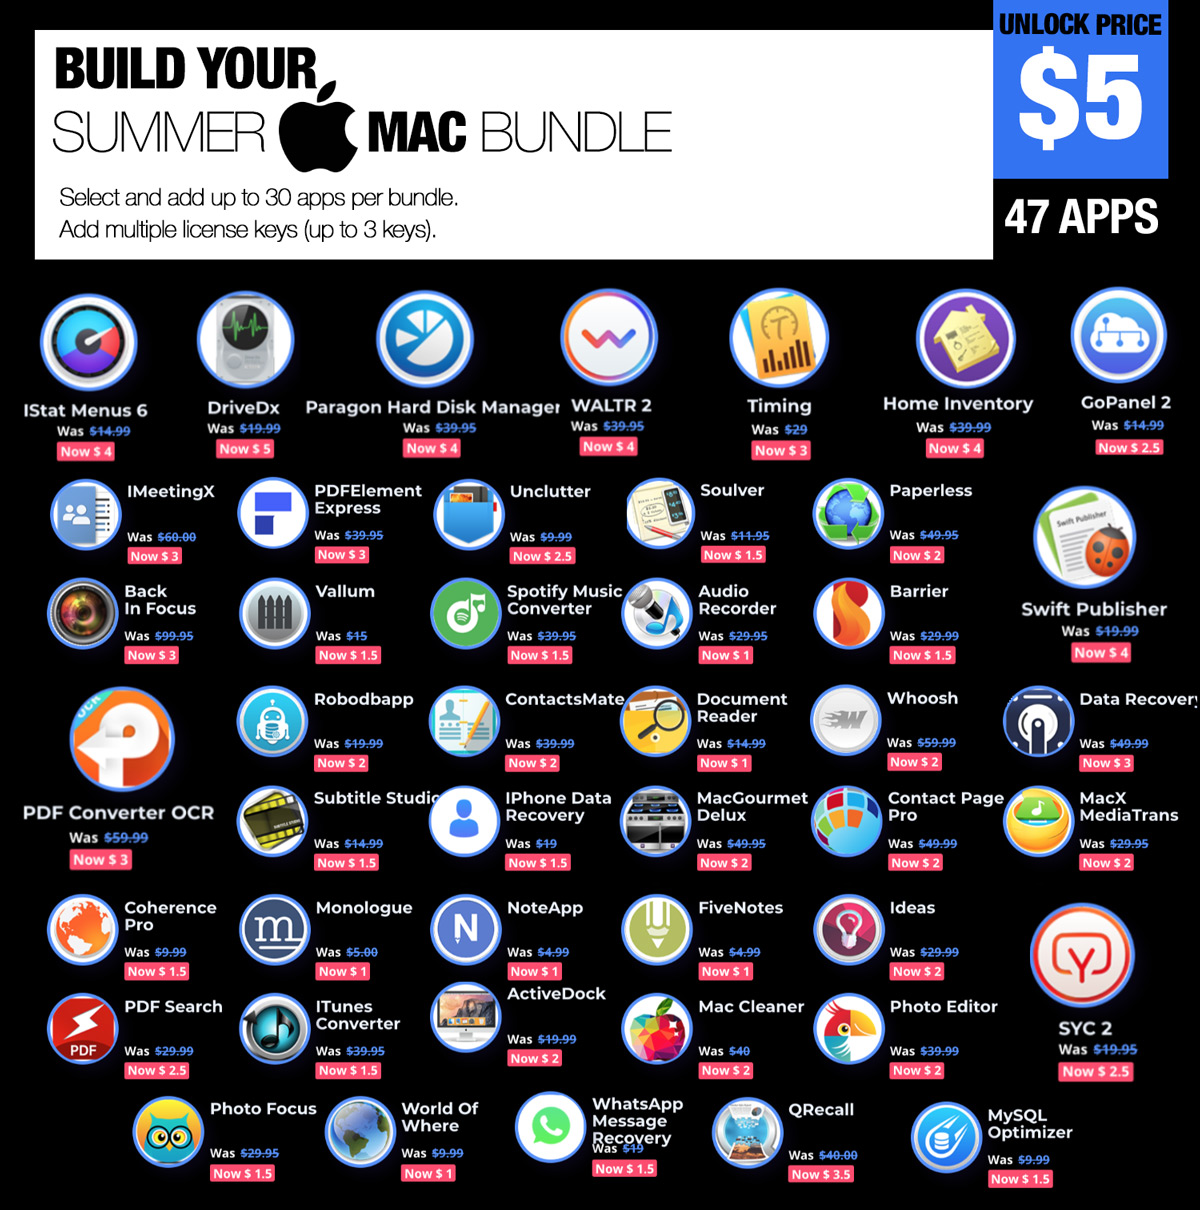 UNLOCK YOUR MAC BUNDLE FOR $5 - 1200px width Poster